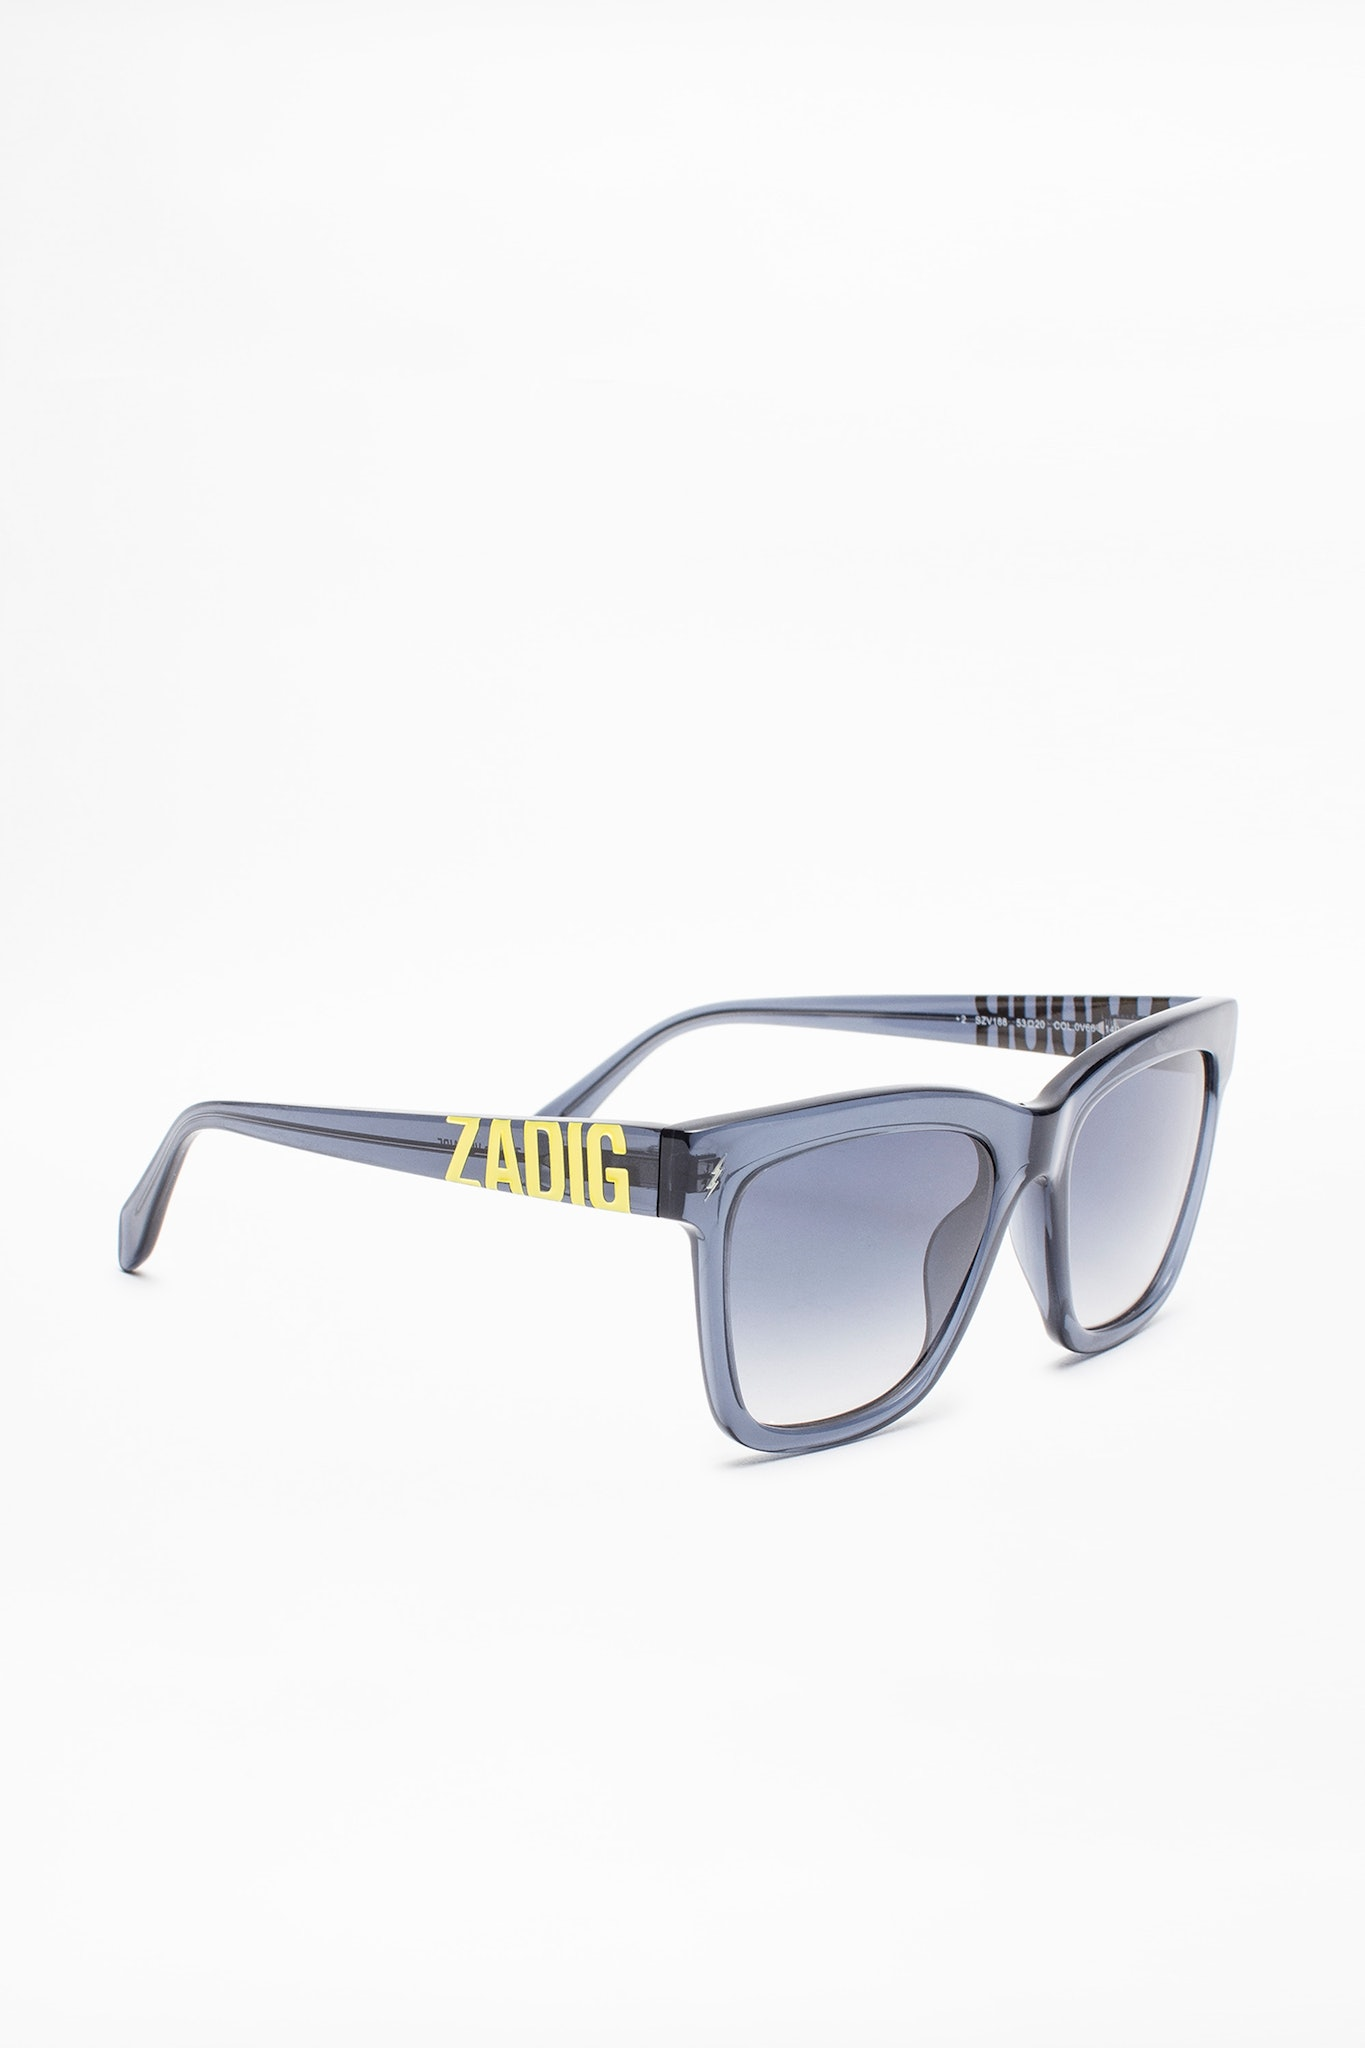 SZV188 Sunglasses